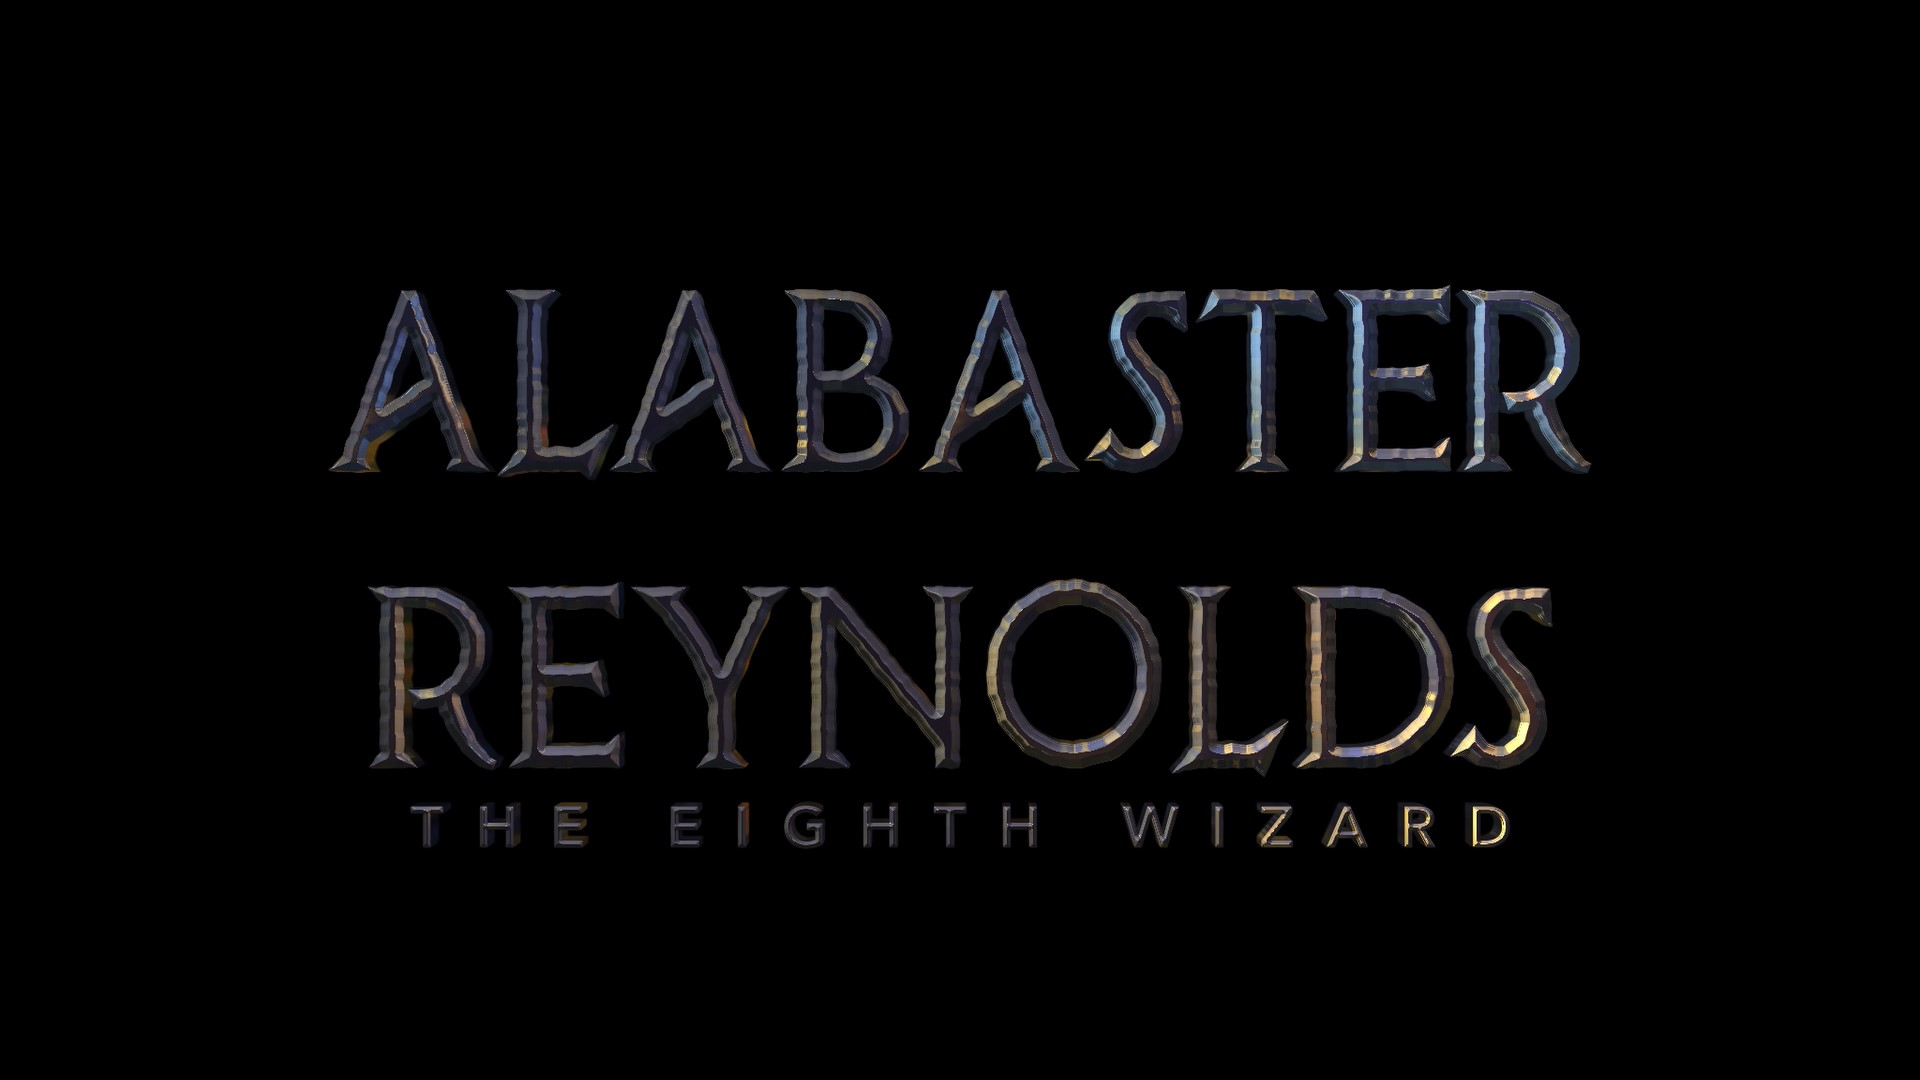 Alabaster Reynolds: The Eighth Wizard Pilot-Joseph